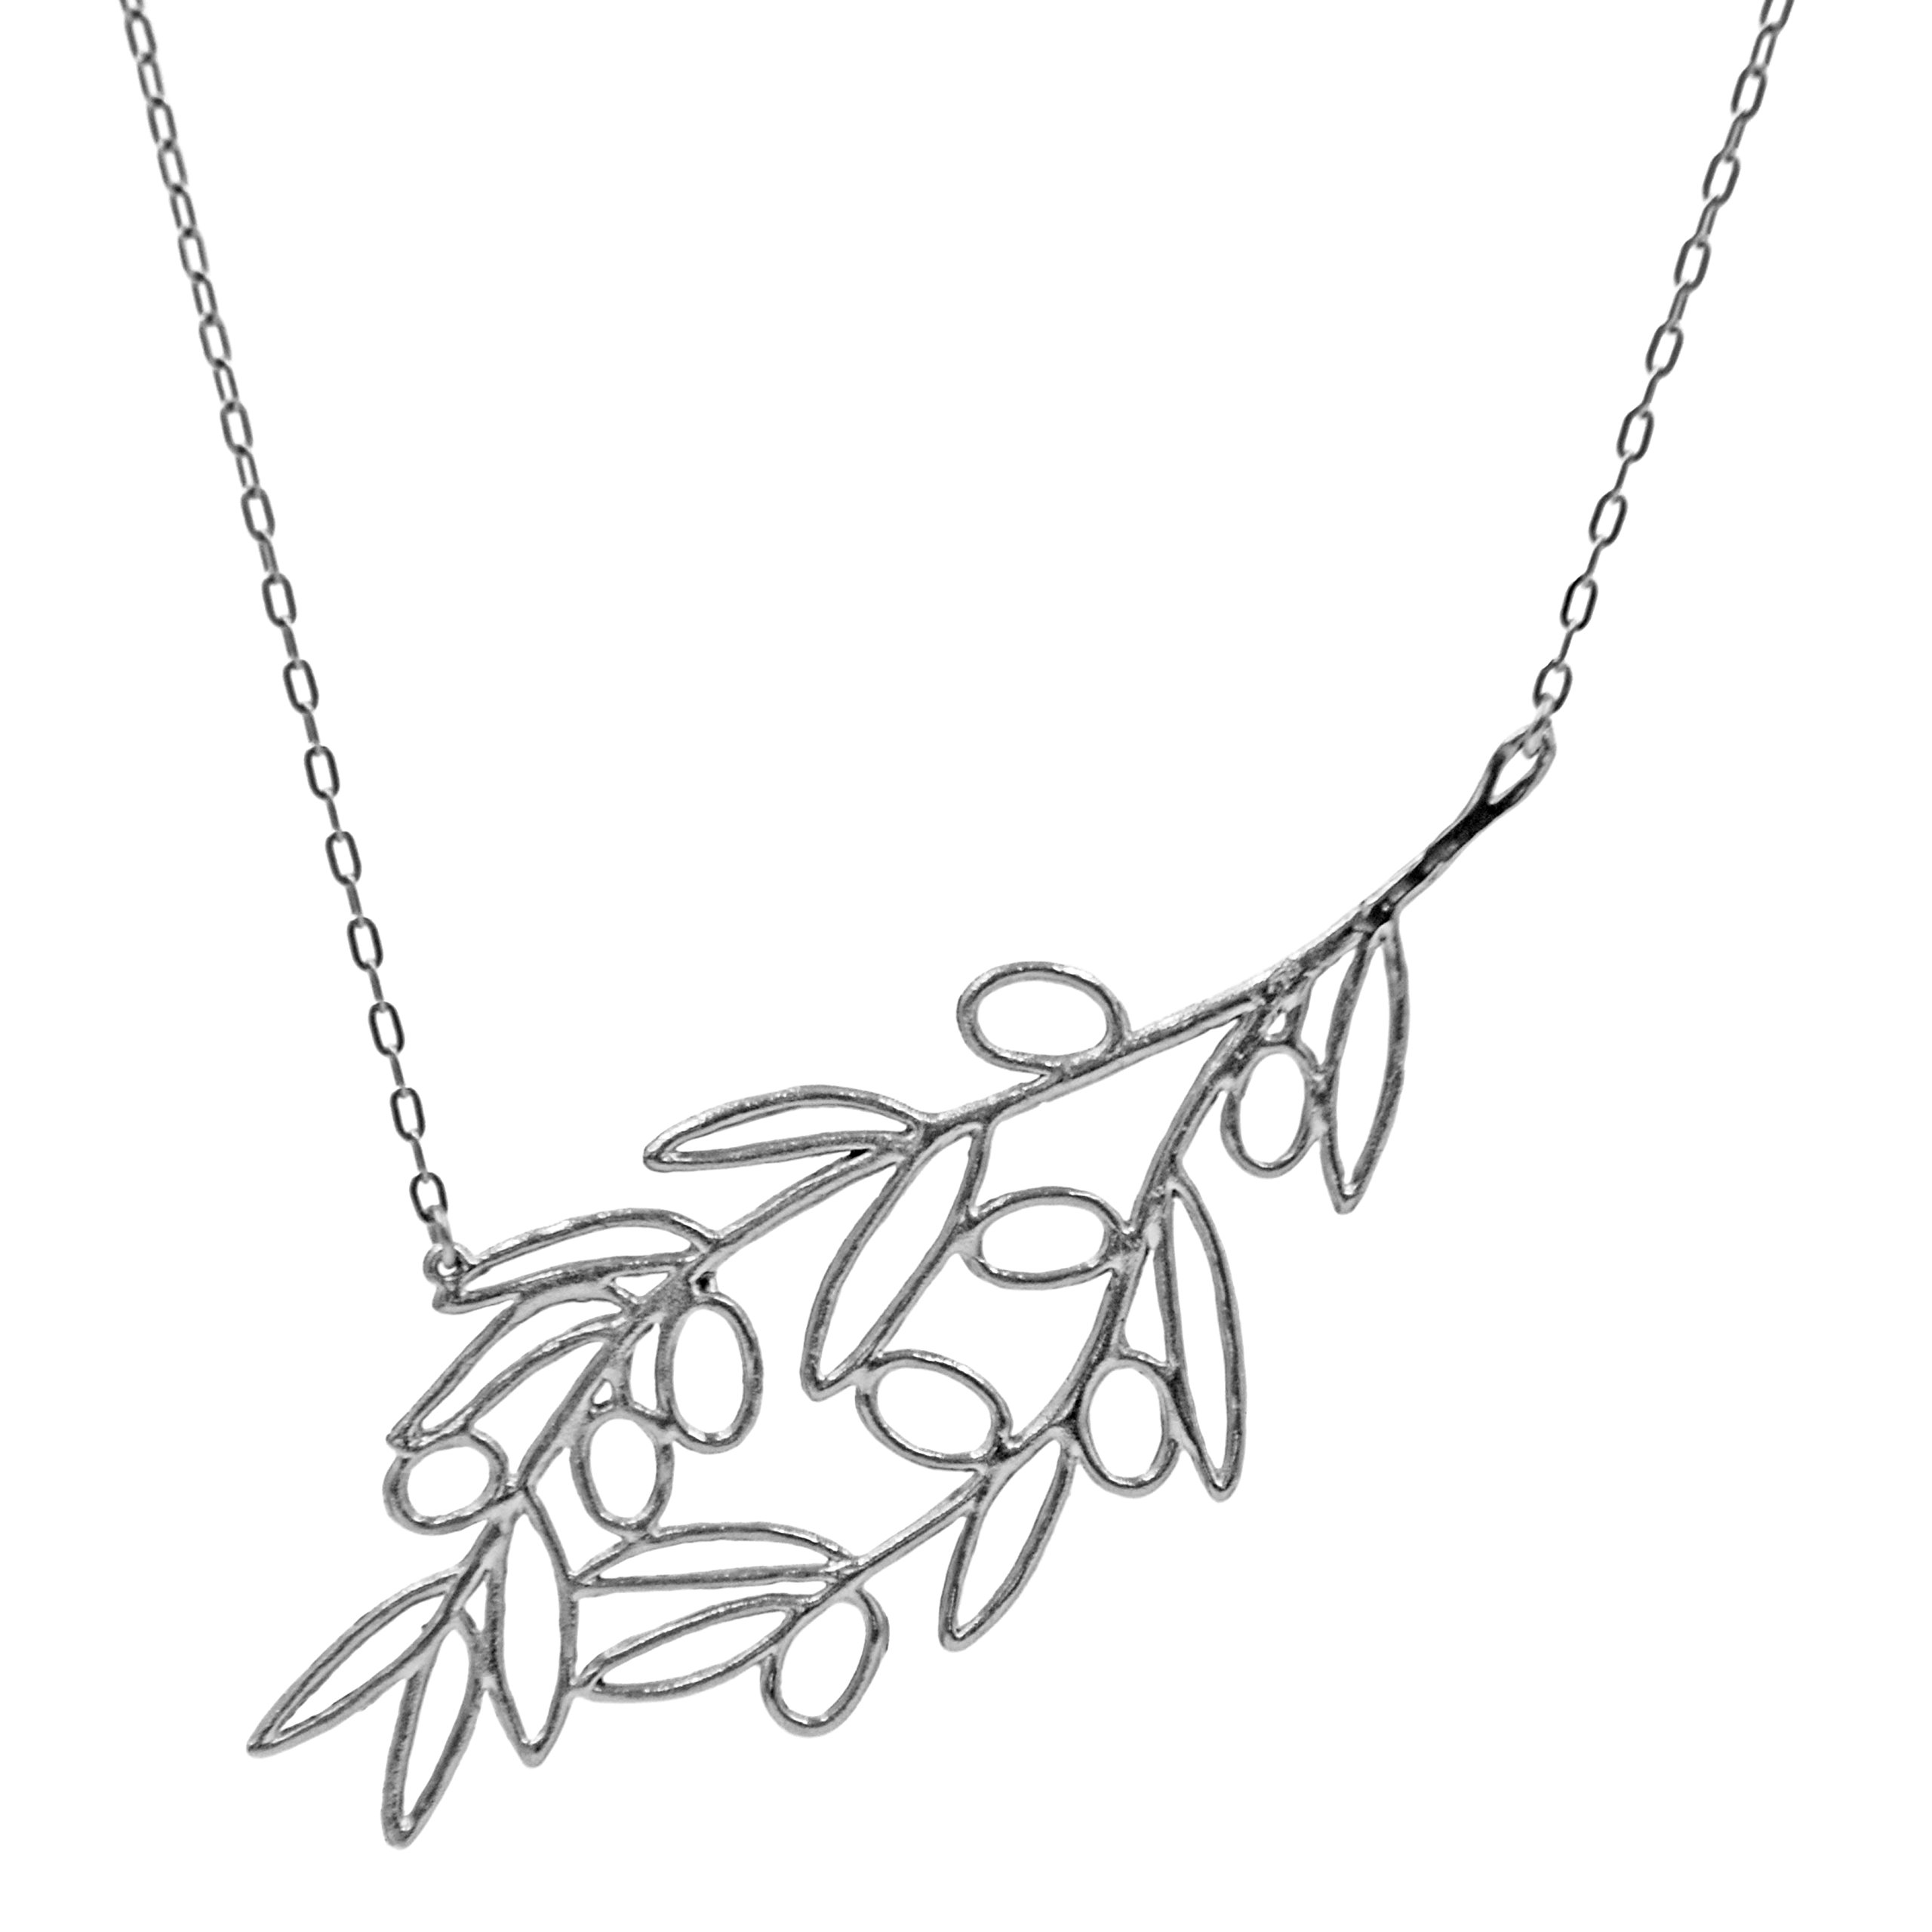 Olive Branch Slanted Collar Necklace (Silver Plated) by Mercedes Shaffer